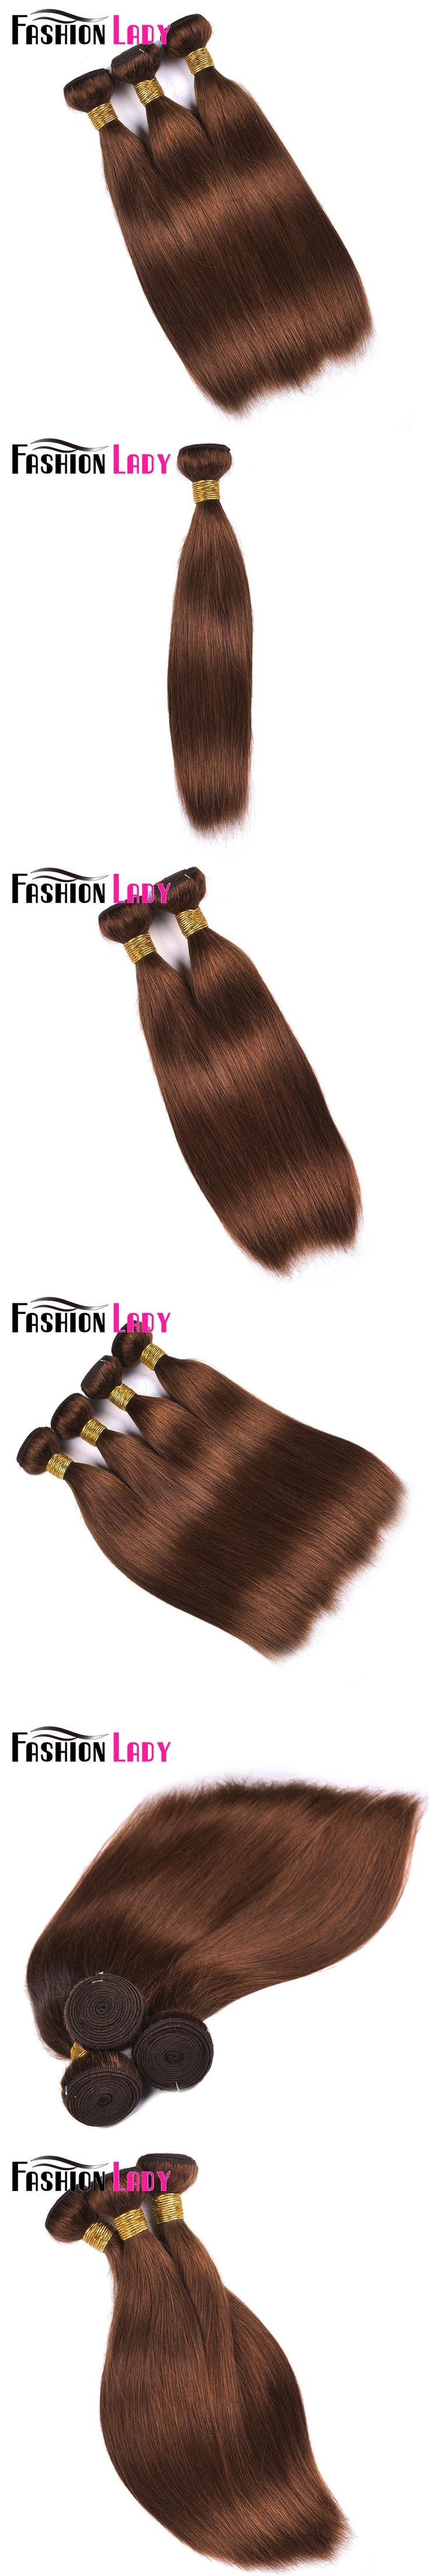 FASHION LADY Pre-Colored 100% Human Hair Weave #4 Medium Brown One Piece Malaysian Straight Hair Human Hair Weft Non-Remy